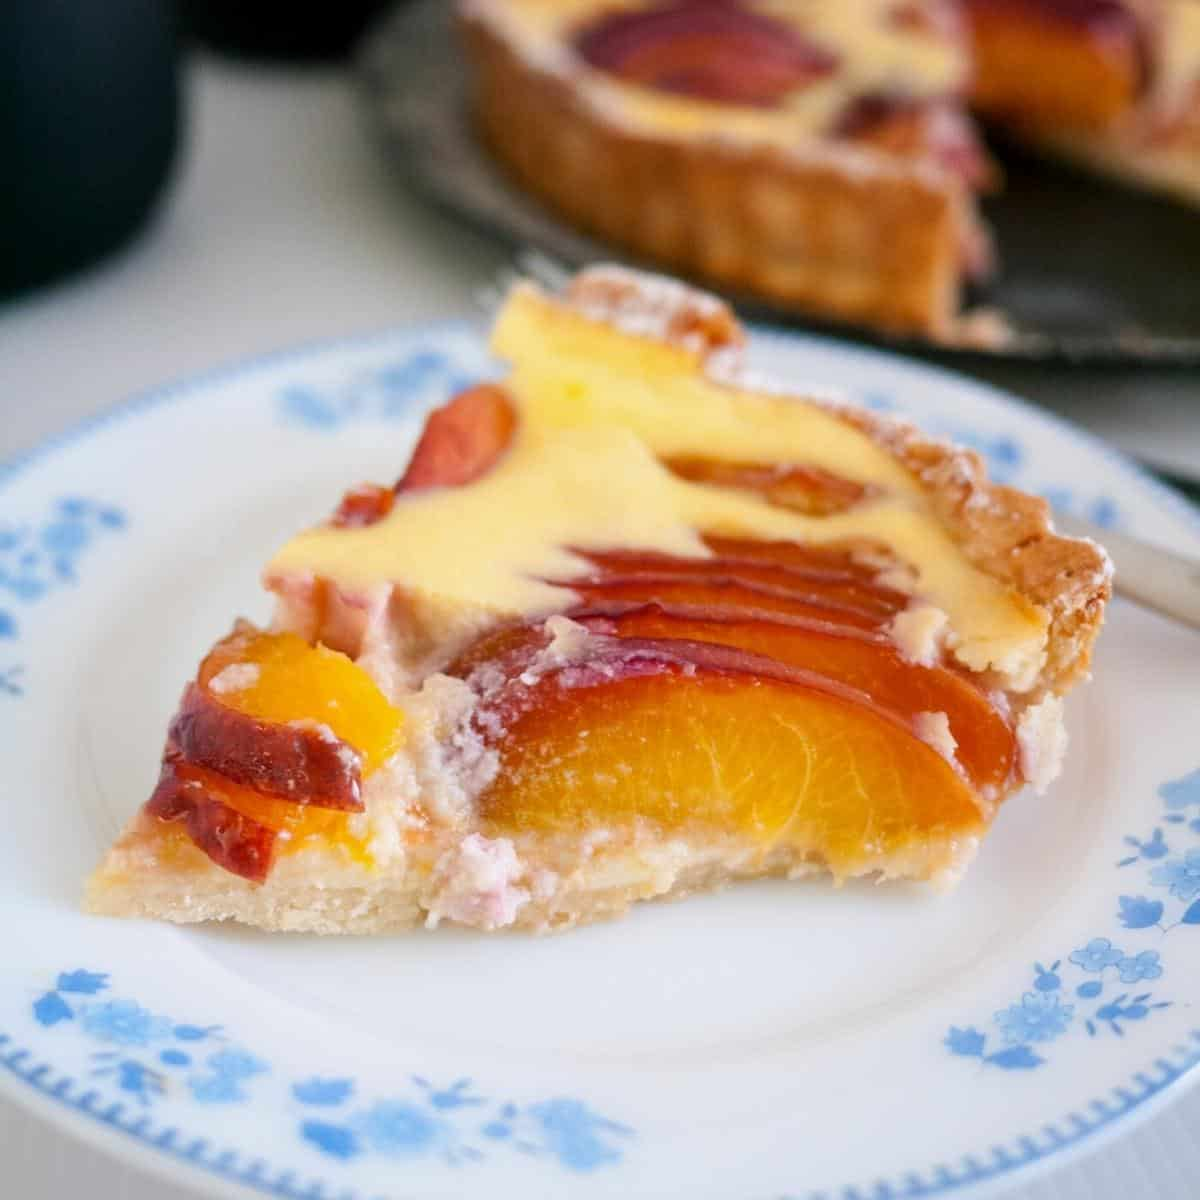 A slice of tart with nectarines.